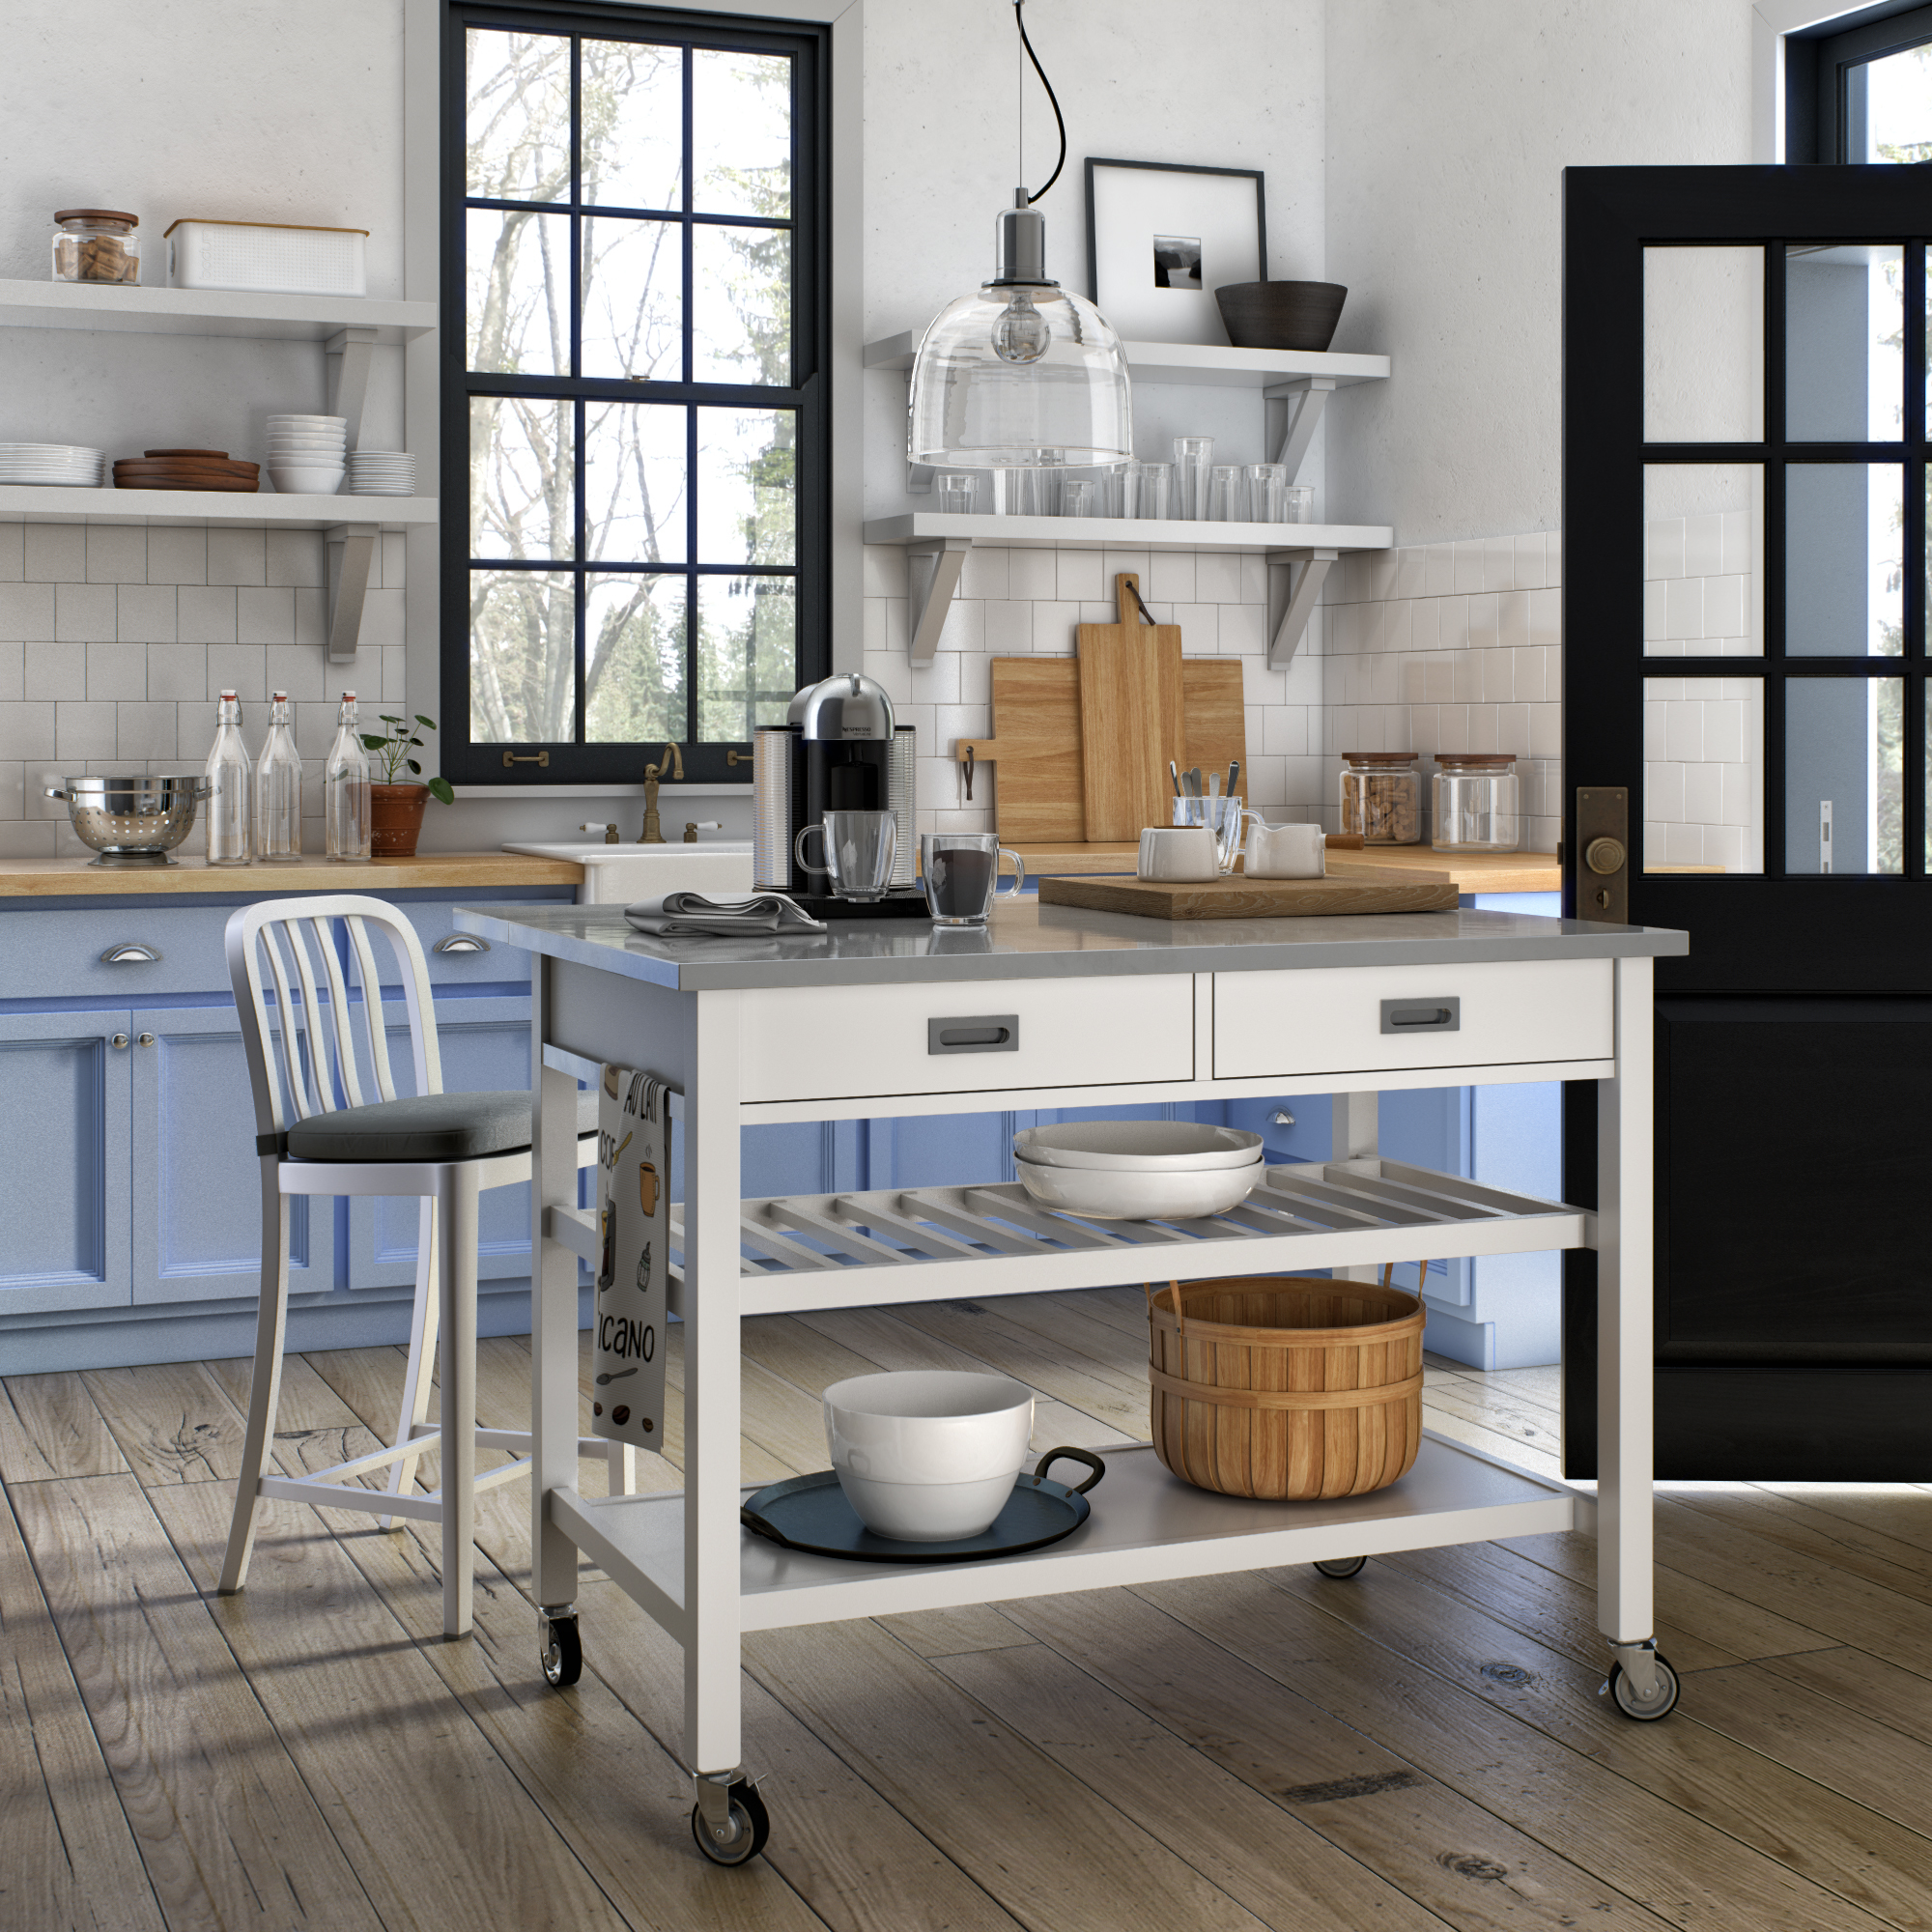 Crate & Barrel - Kitchen Set